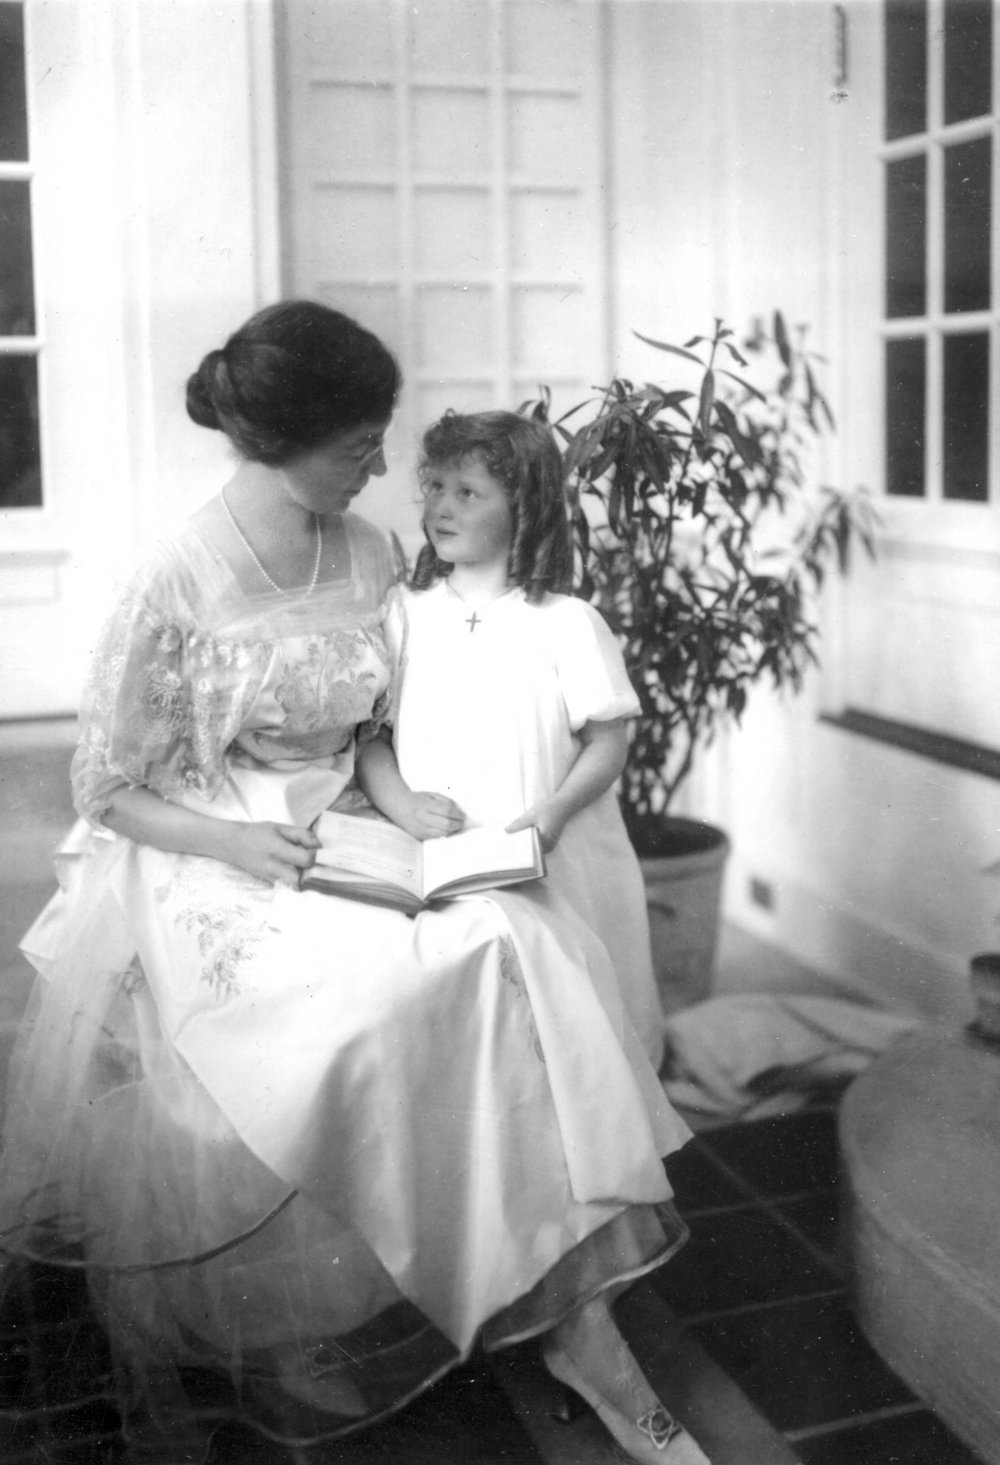 Alice Bemis Taylor and her daughter, c. 1915